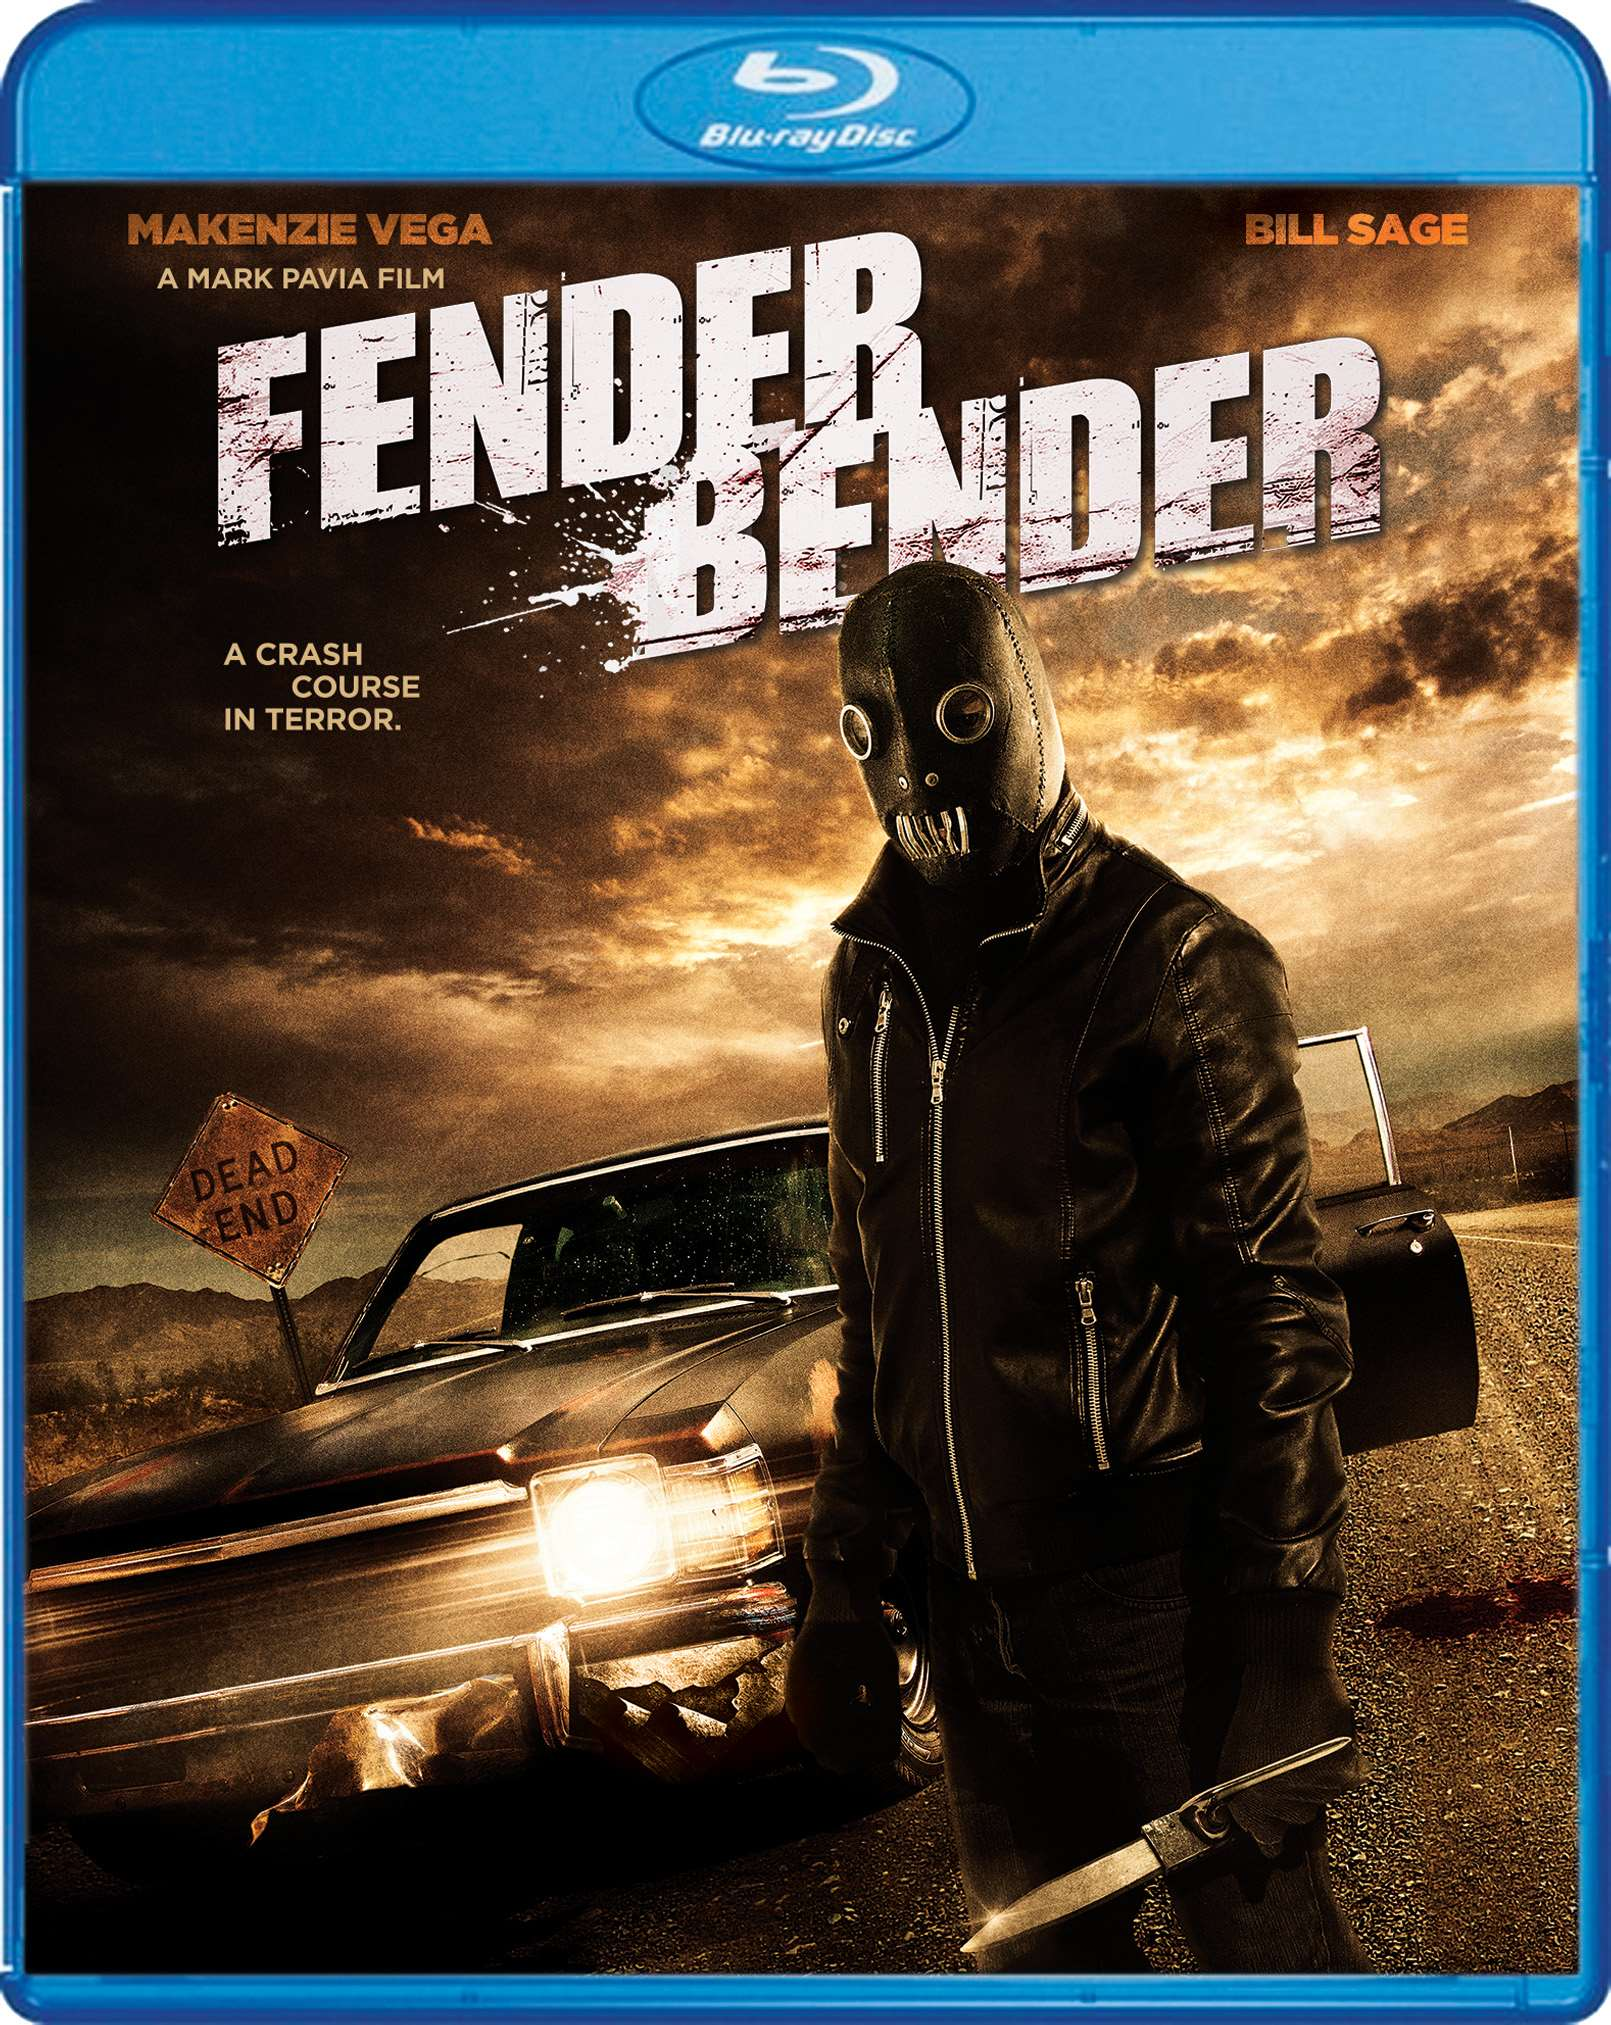 fender_bender_blu-ray_cover_art